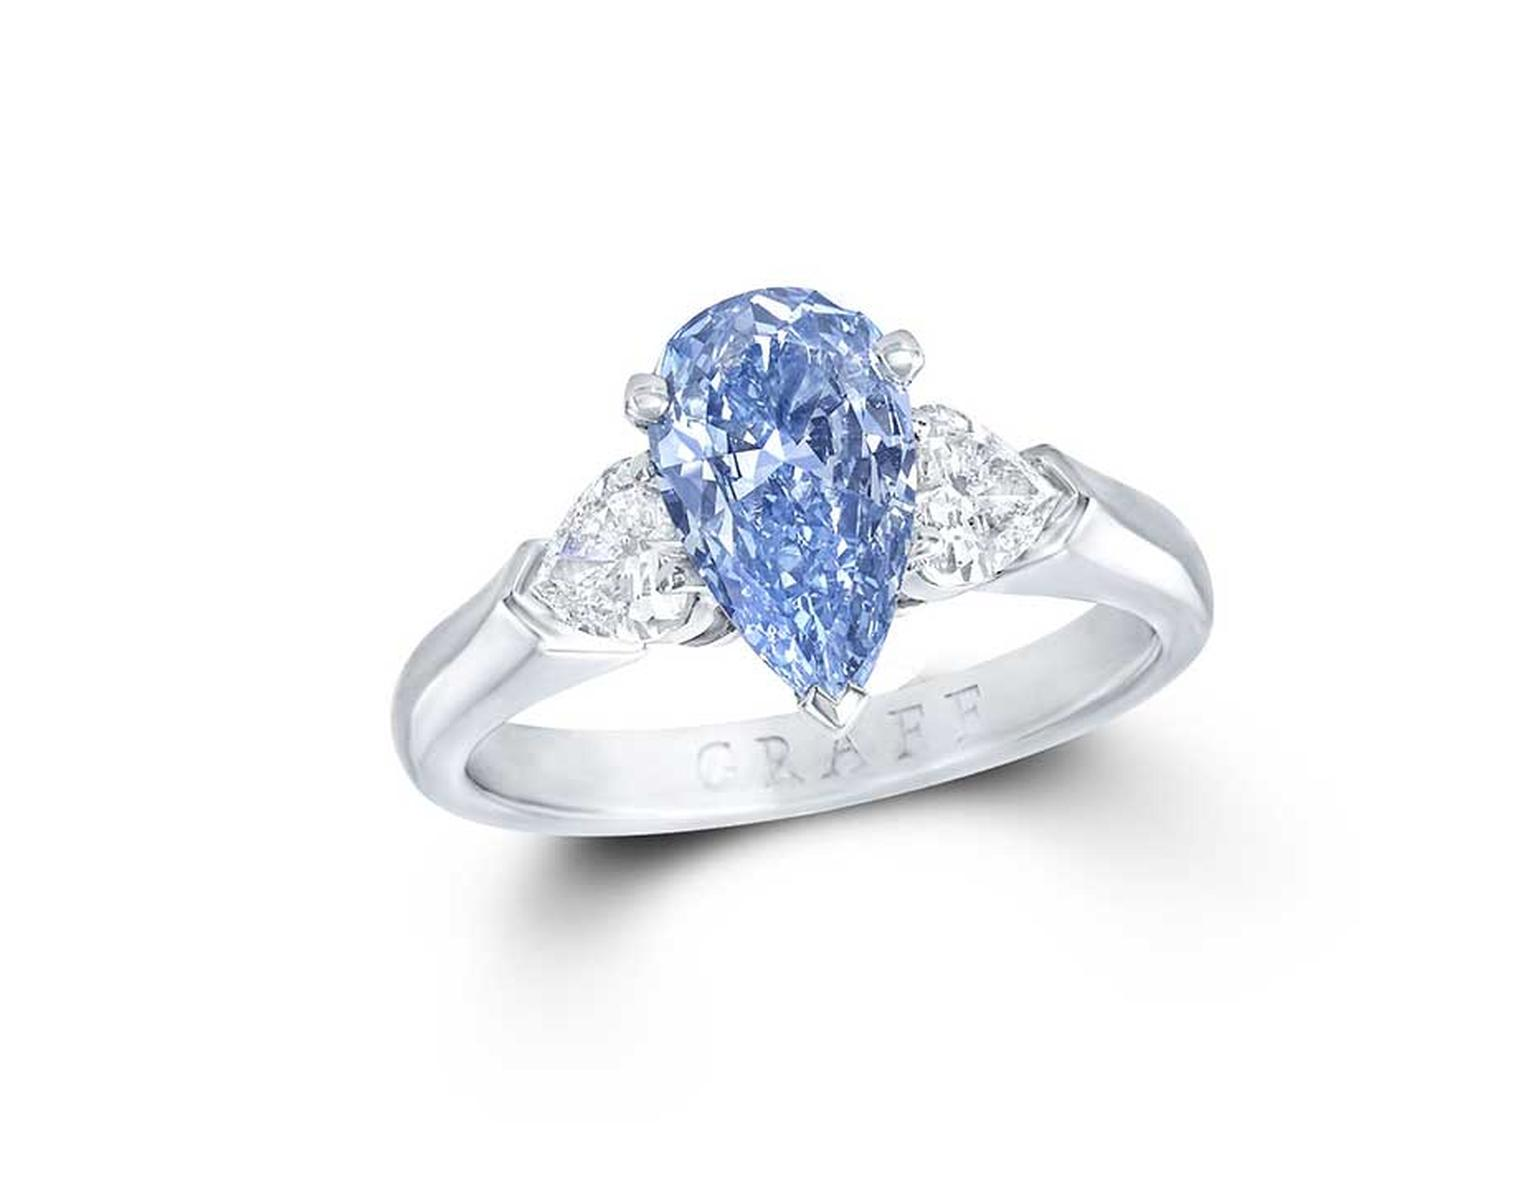 Graff 1 04ct Internally Flawless Blue Diamond Engagement Ring Flanked By Two Pear Shaped White